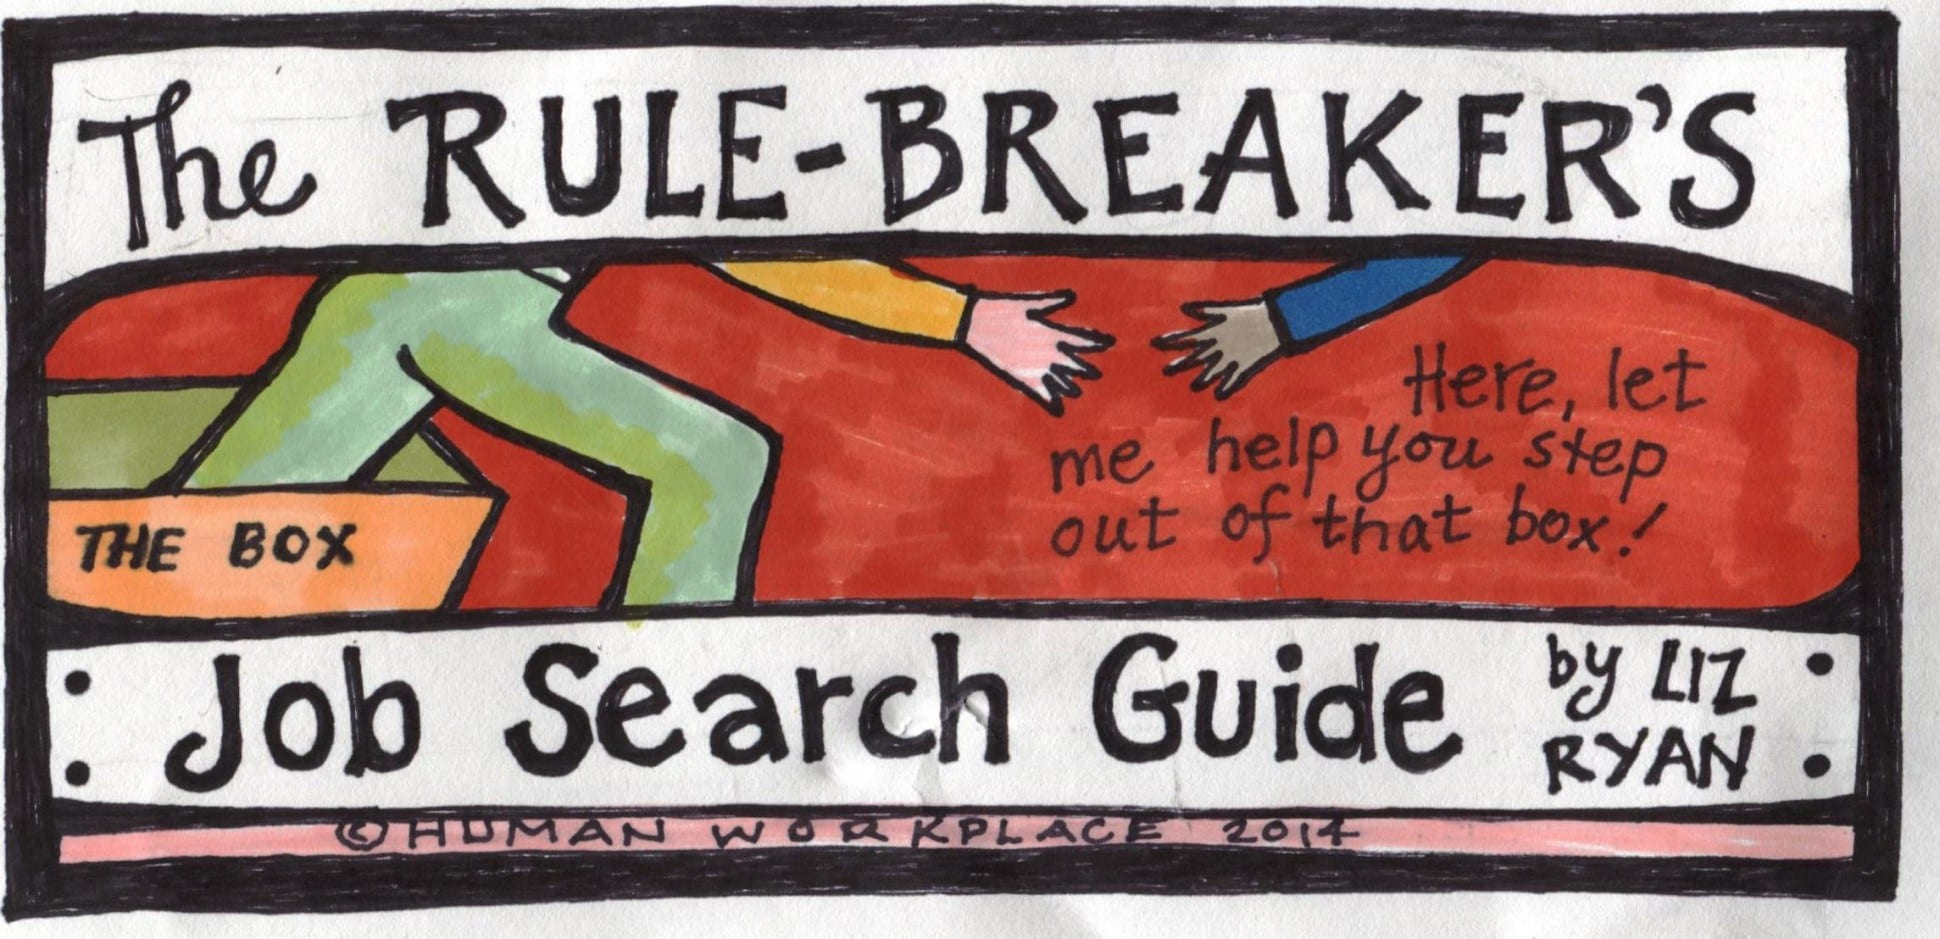 the-rule-breakers-job-search-guide-1940x939